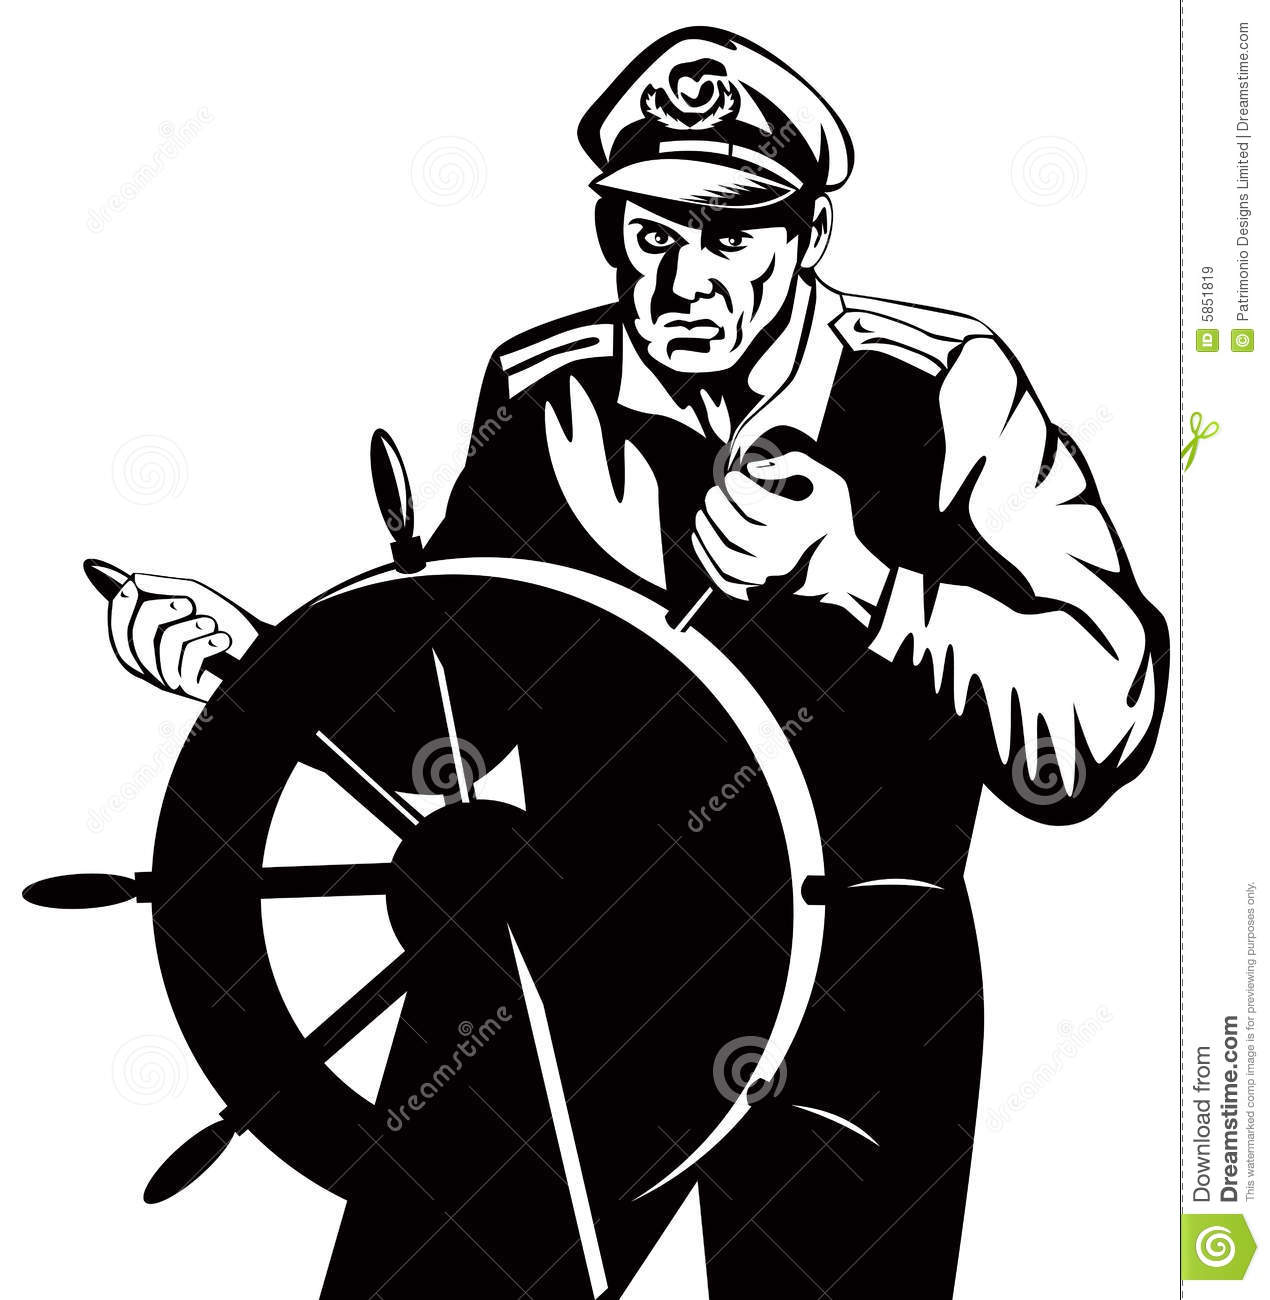 Captain Behind The Wheel Royalty Free Stock Images.